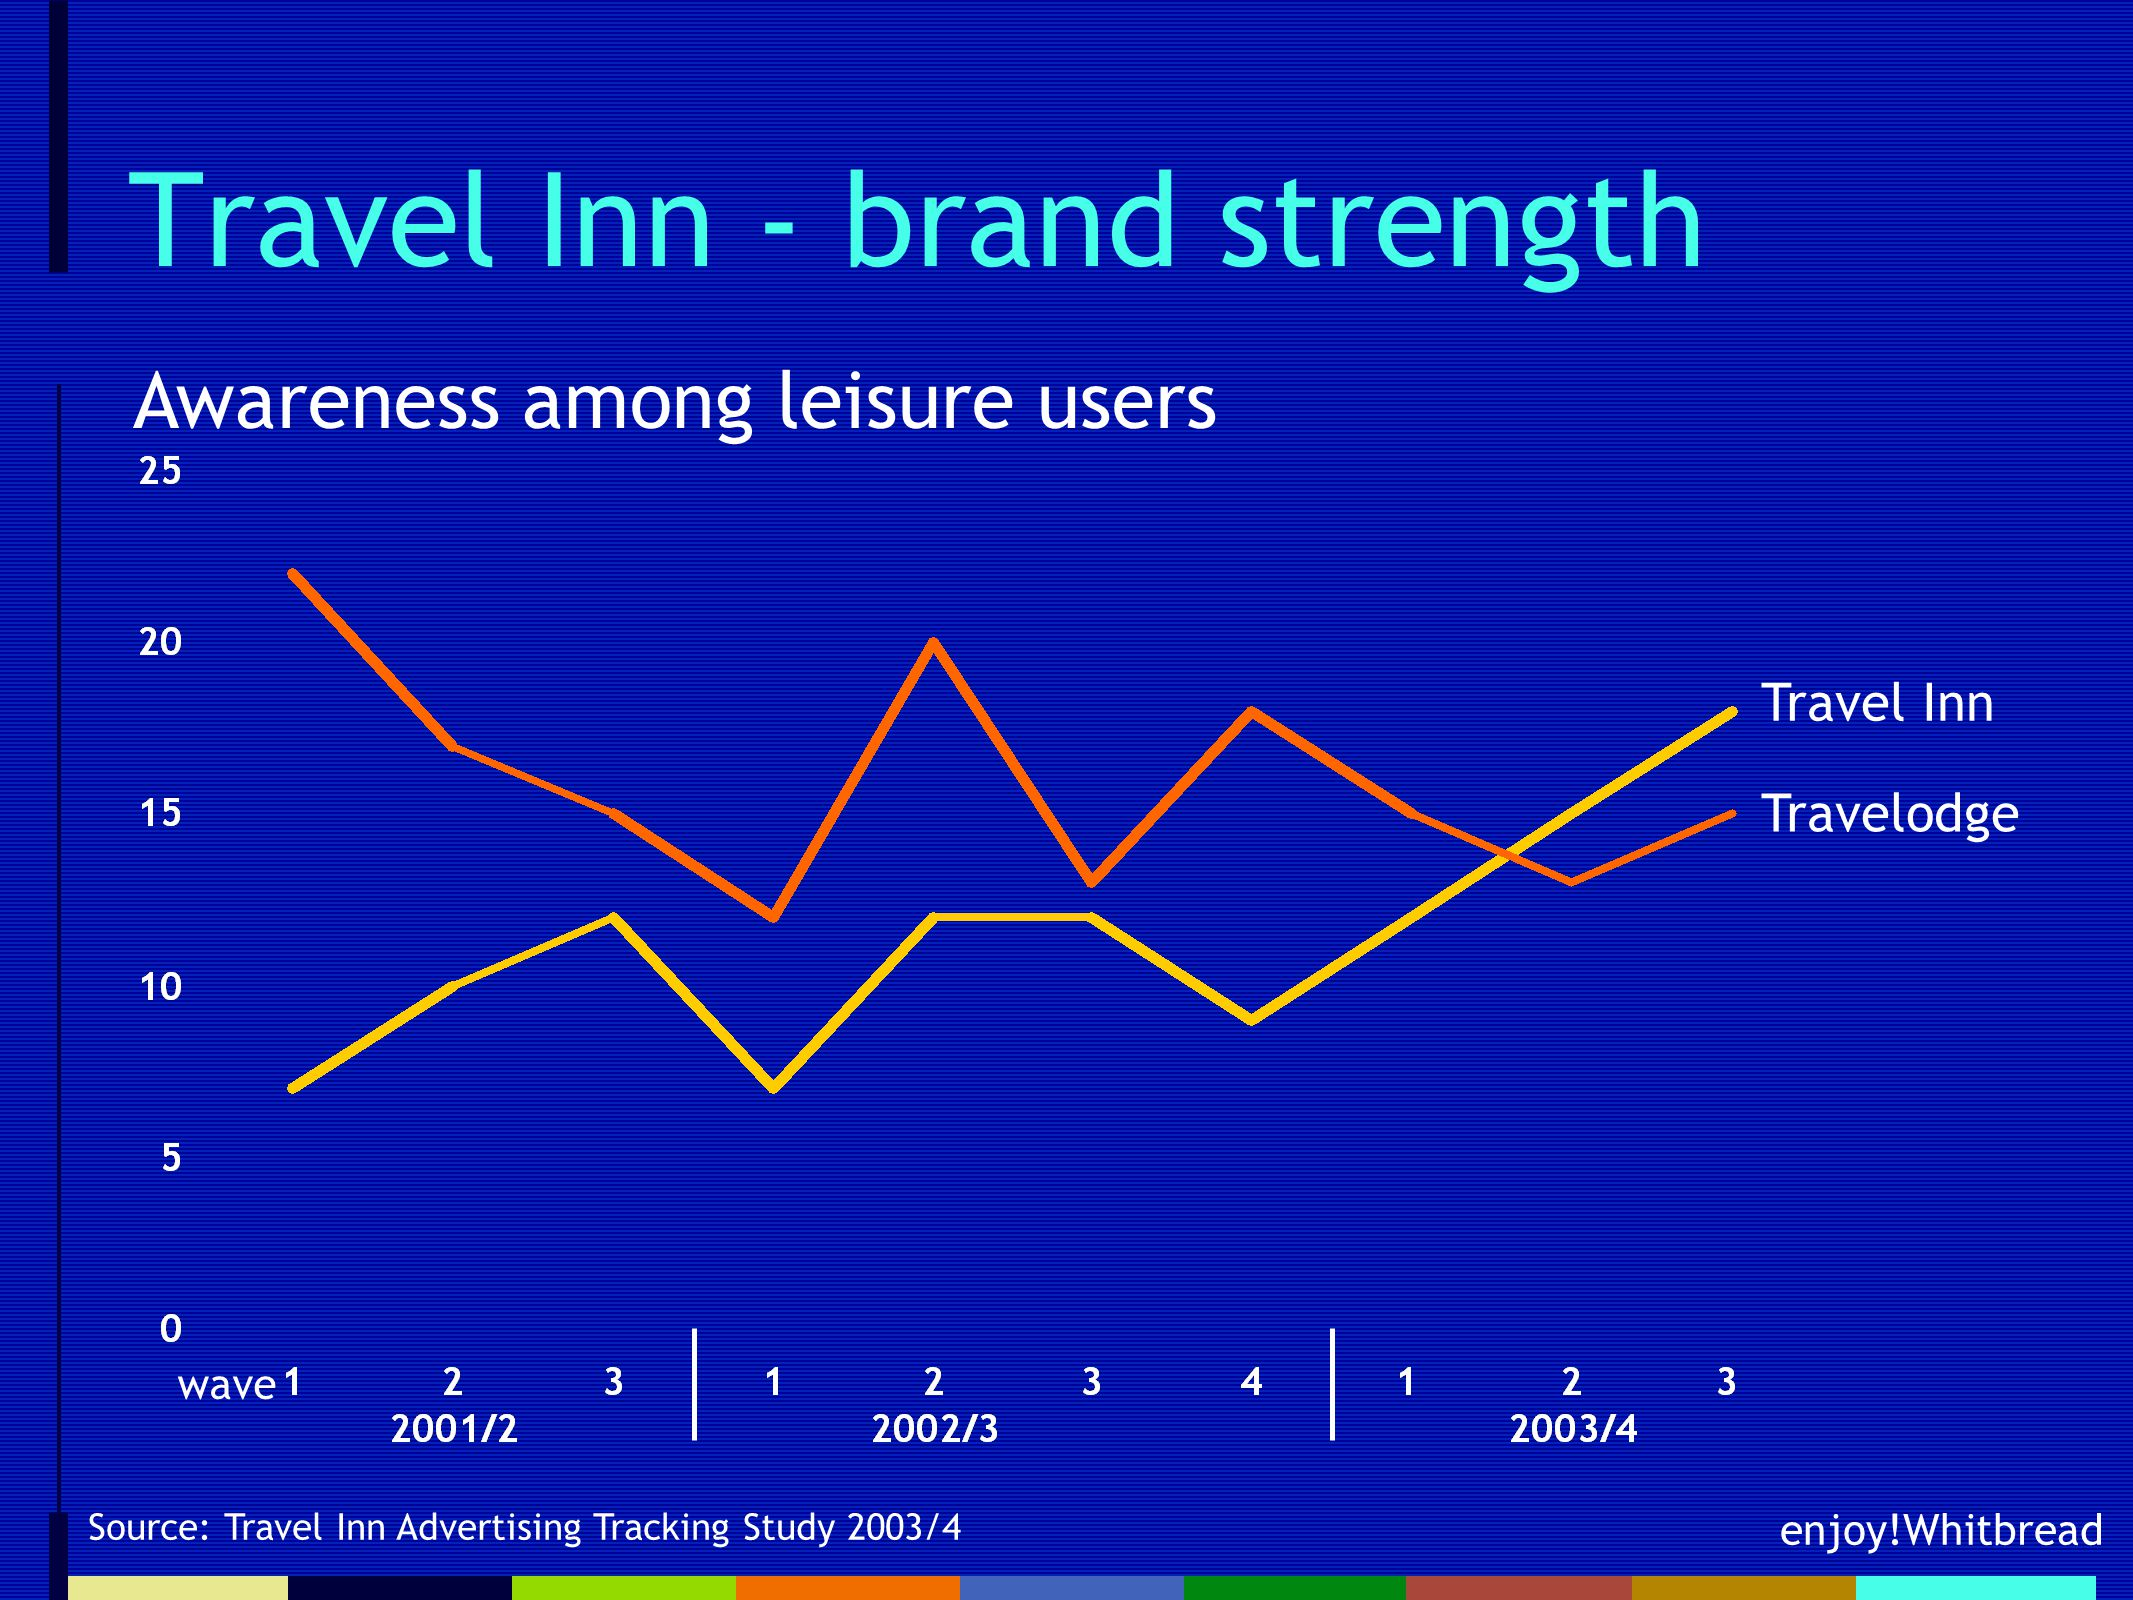 enjoy!Whitbread Travel Inn - brand strength Source: Travel Inn Advertising Tracking Study 2003/4 wave Travel Inn Travelodge Awareness among leisure users